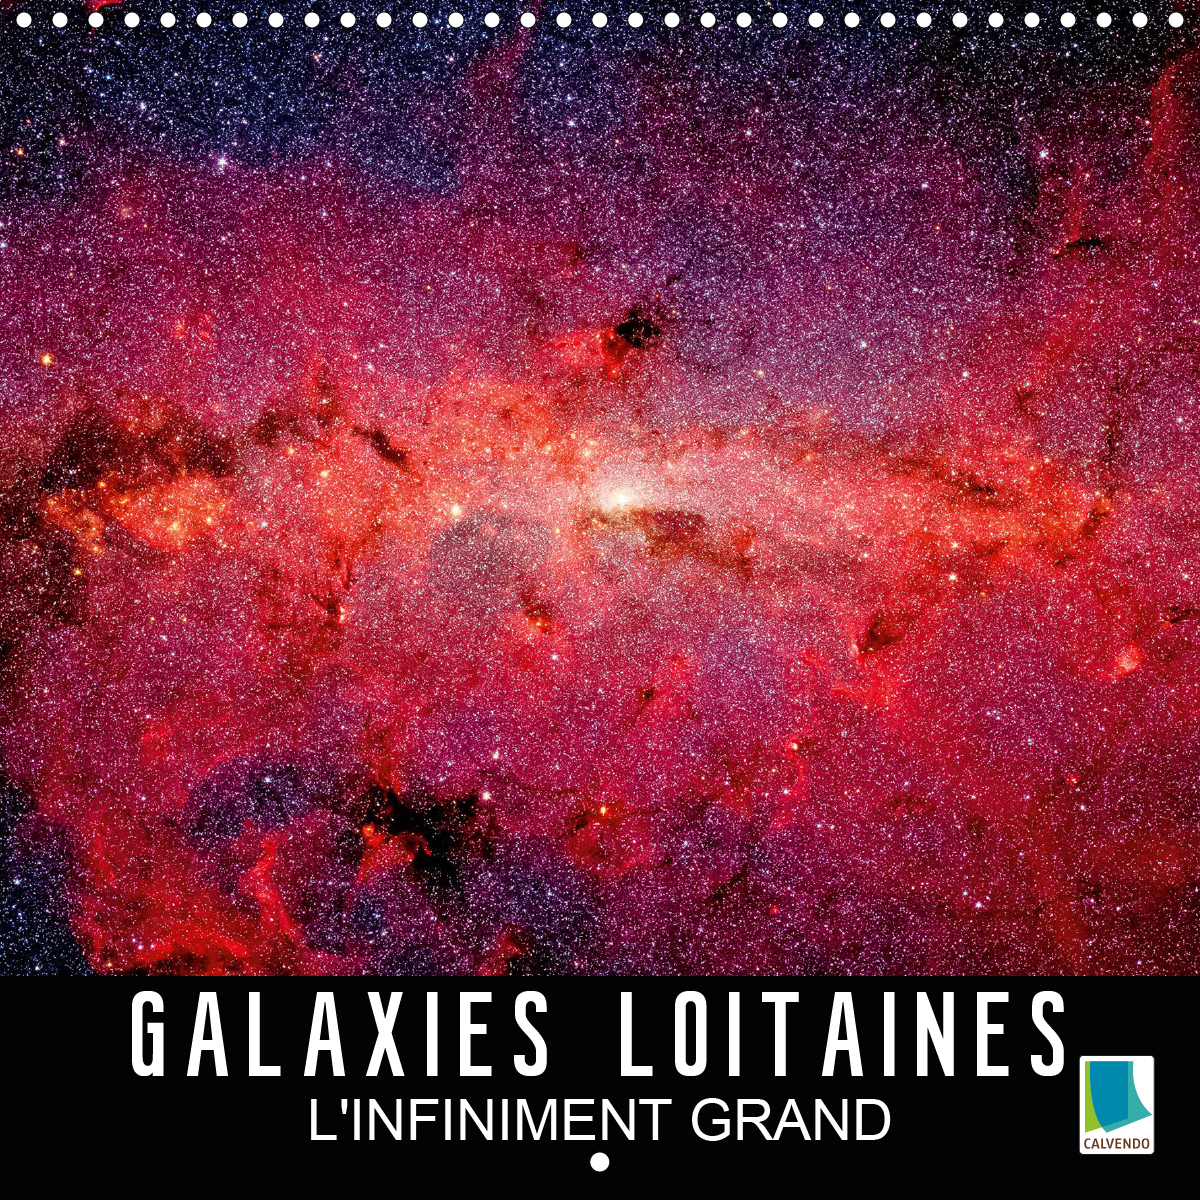 GALAXIES LOINTAINES L INFINIMENT GRAND CALENDRIER MURAL 2020 300 300 MM SQUARE - IMAGES EXCEPTIONNEL